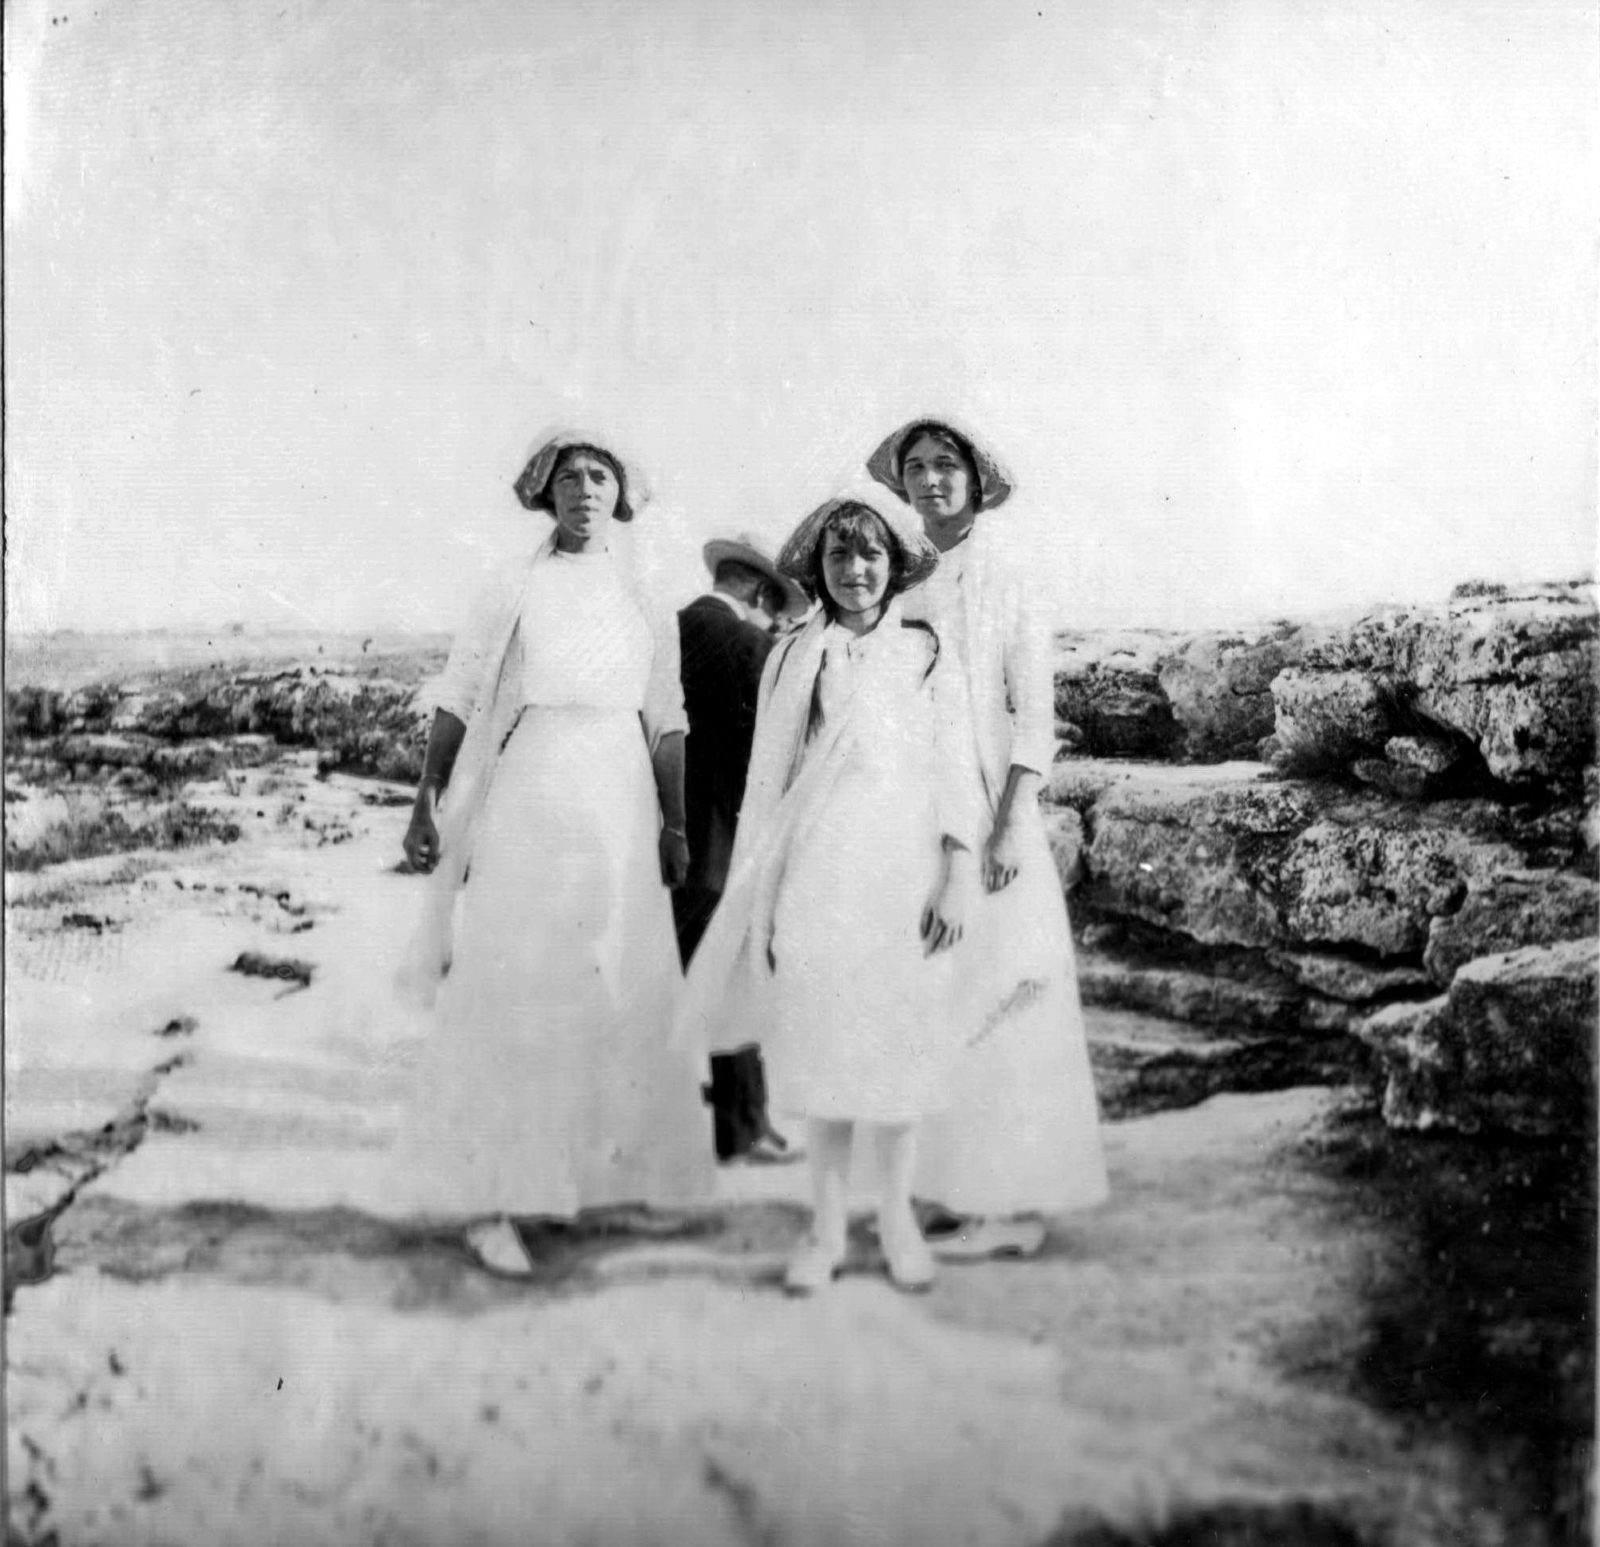 Daughters of Emperor Nicholas II Grand Princess Olga, Anastasia Nikolaevna and Grand Duchess Olga Alexandrovna. Crimea.